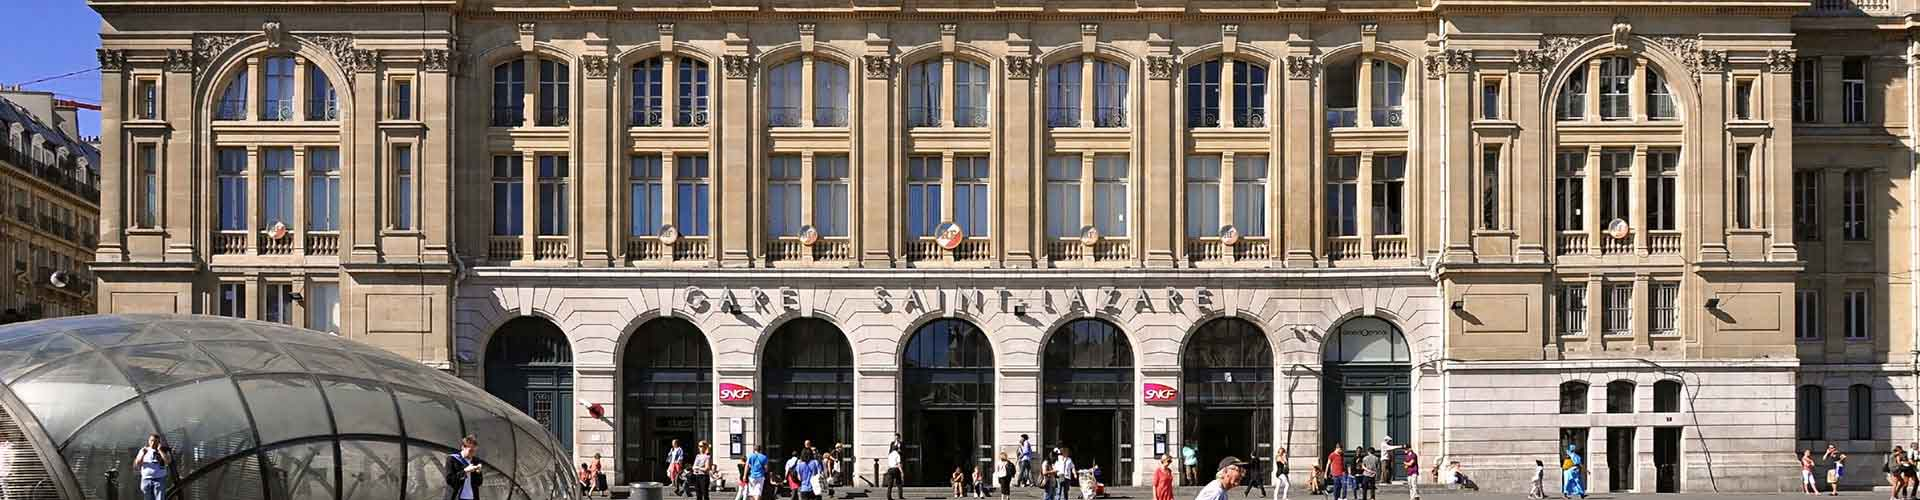 Paris – Hostels close to Gare Saint-Lazare railway station. Maps for Paris, Photos and Reviews for each hostel in Paris.